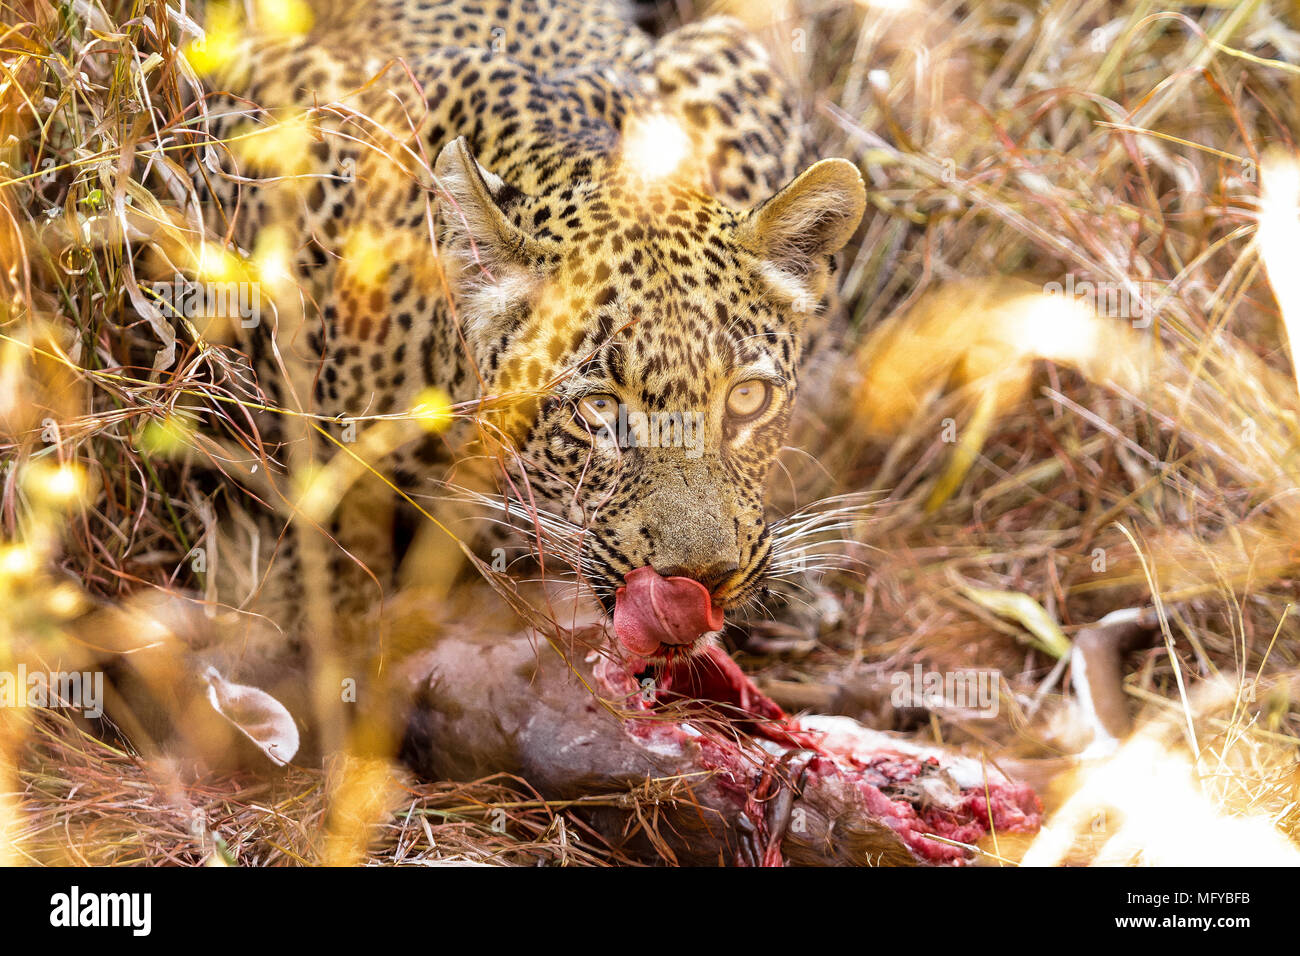 Photographed on safari in a South African game reserve. He was busy eating a fresh kill at the time of photographing - Stock Image